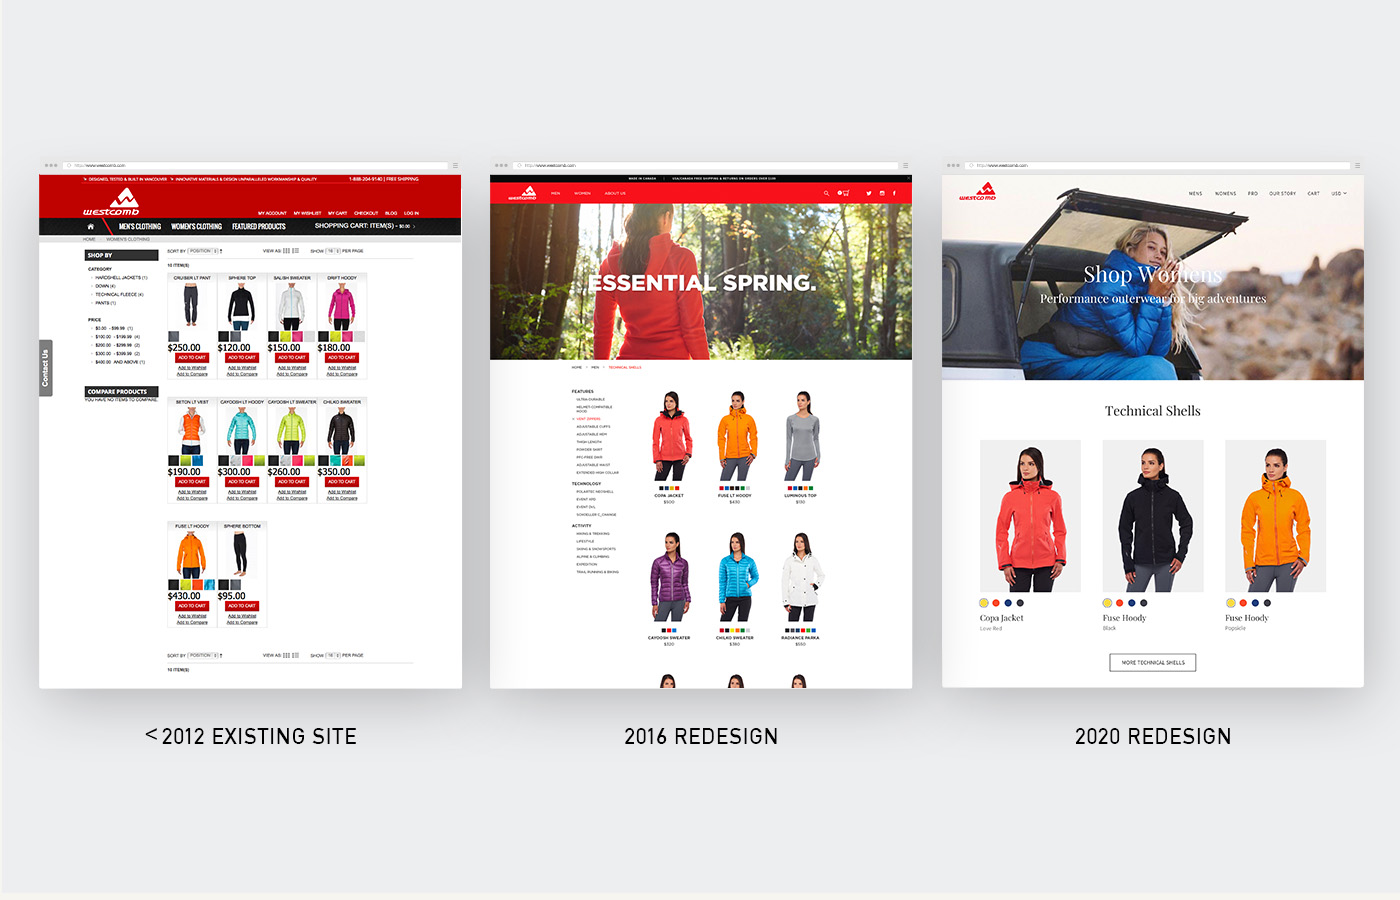 Evolution of the Westcomb website from transactional on the left, to lifestyle focused on the right.